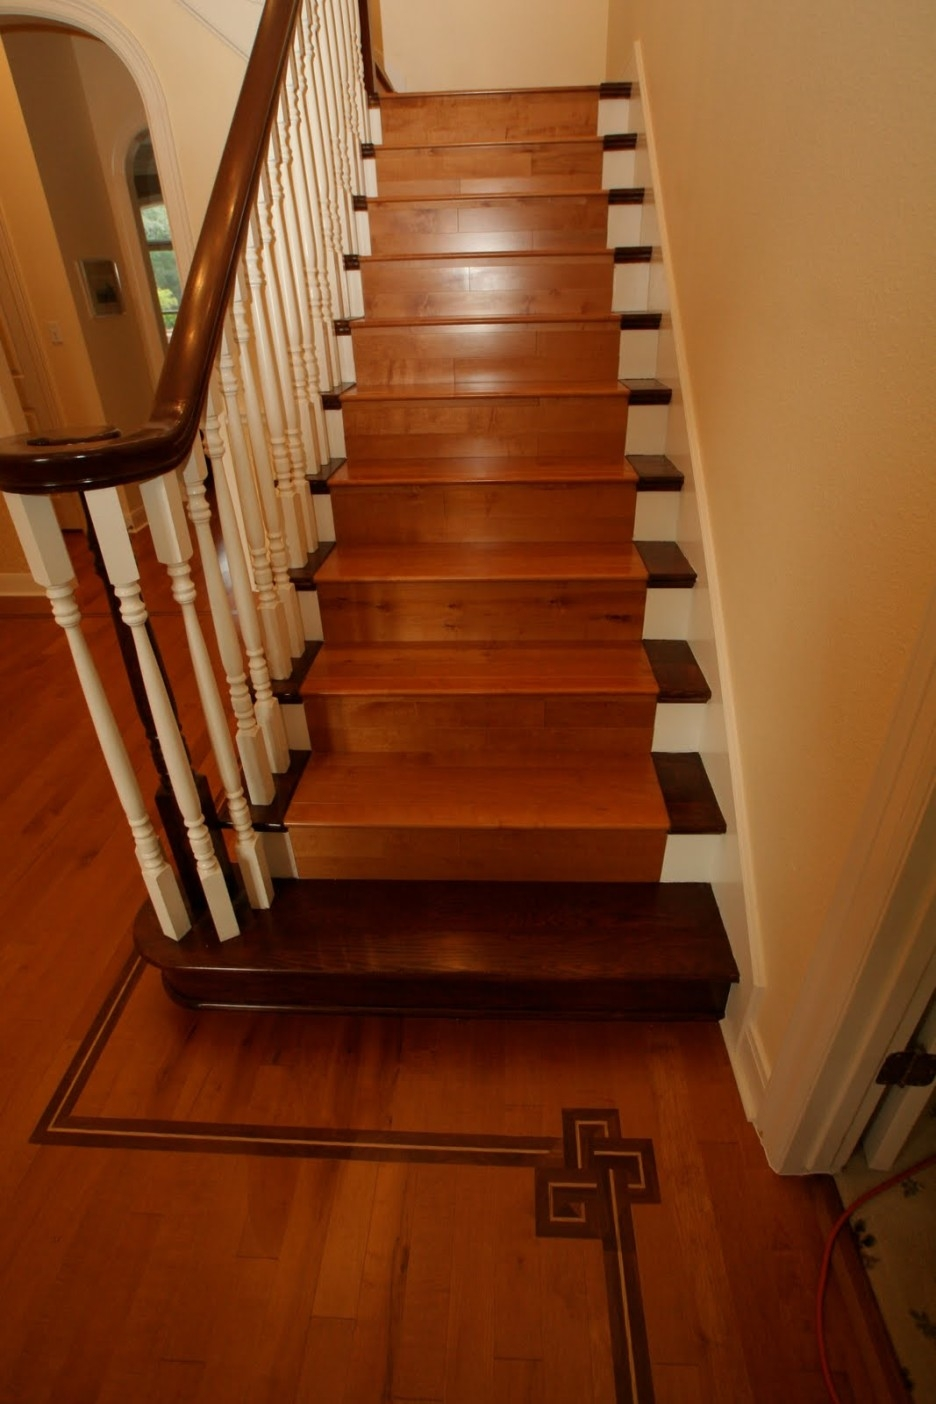 Interior Simple Home Stair Design With Brown Oak Tread Covers And Intended For Brown Stair Treads (Image 4 of 15)